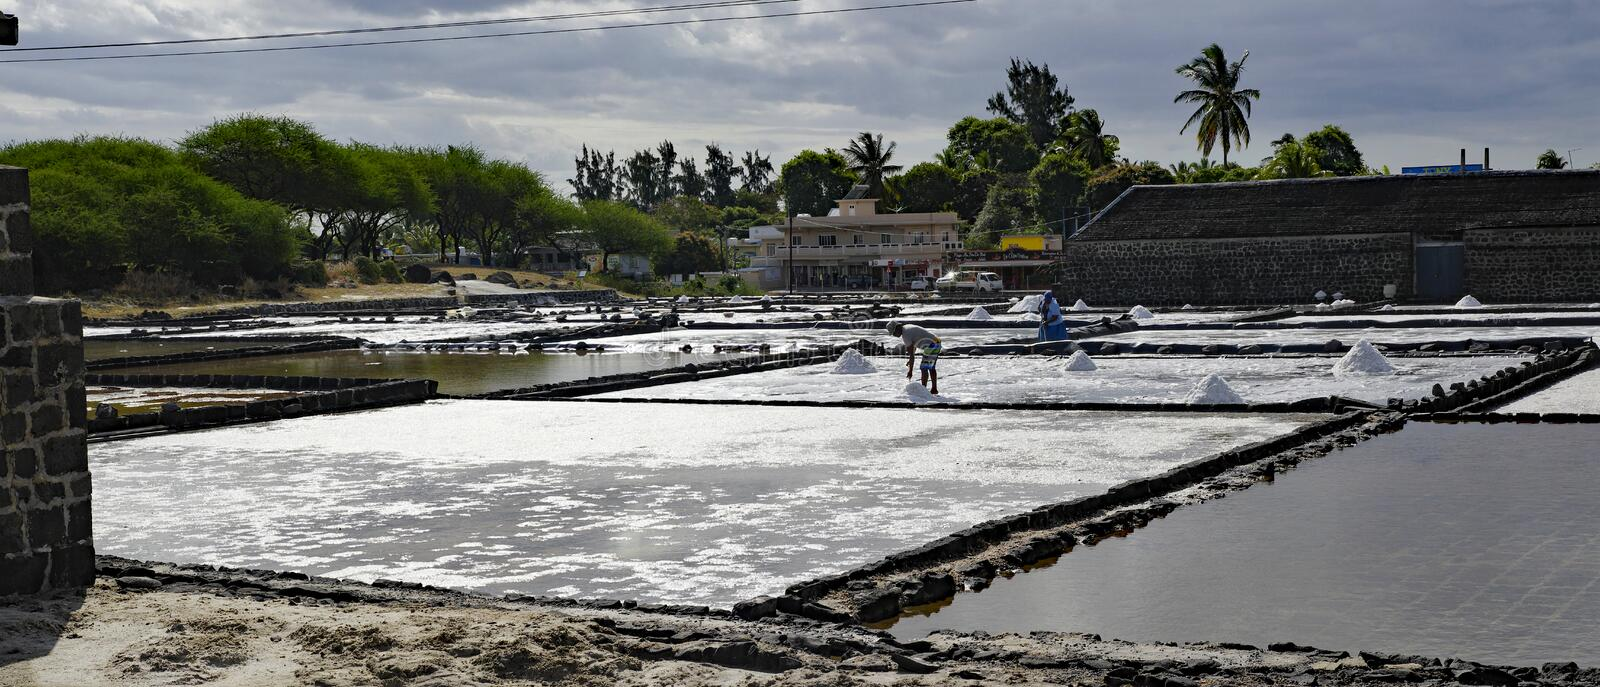 Tamarin Salt Pans is a popular tourist attraction with the square brick clay basins. Mauritius. TAMARIN/MAURITIUS - AUGUST 24, 2018: Tamarin Salt Pans is a royalty free stock photo